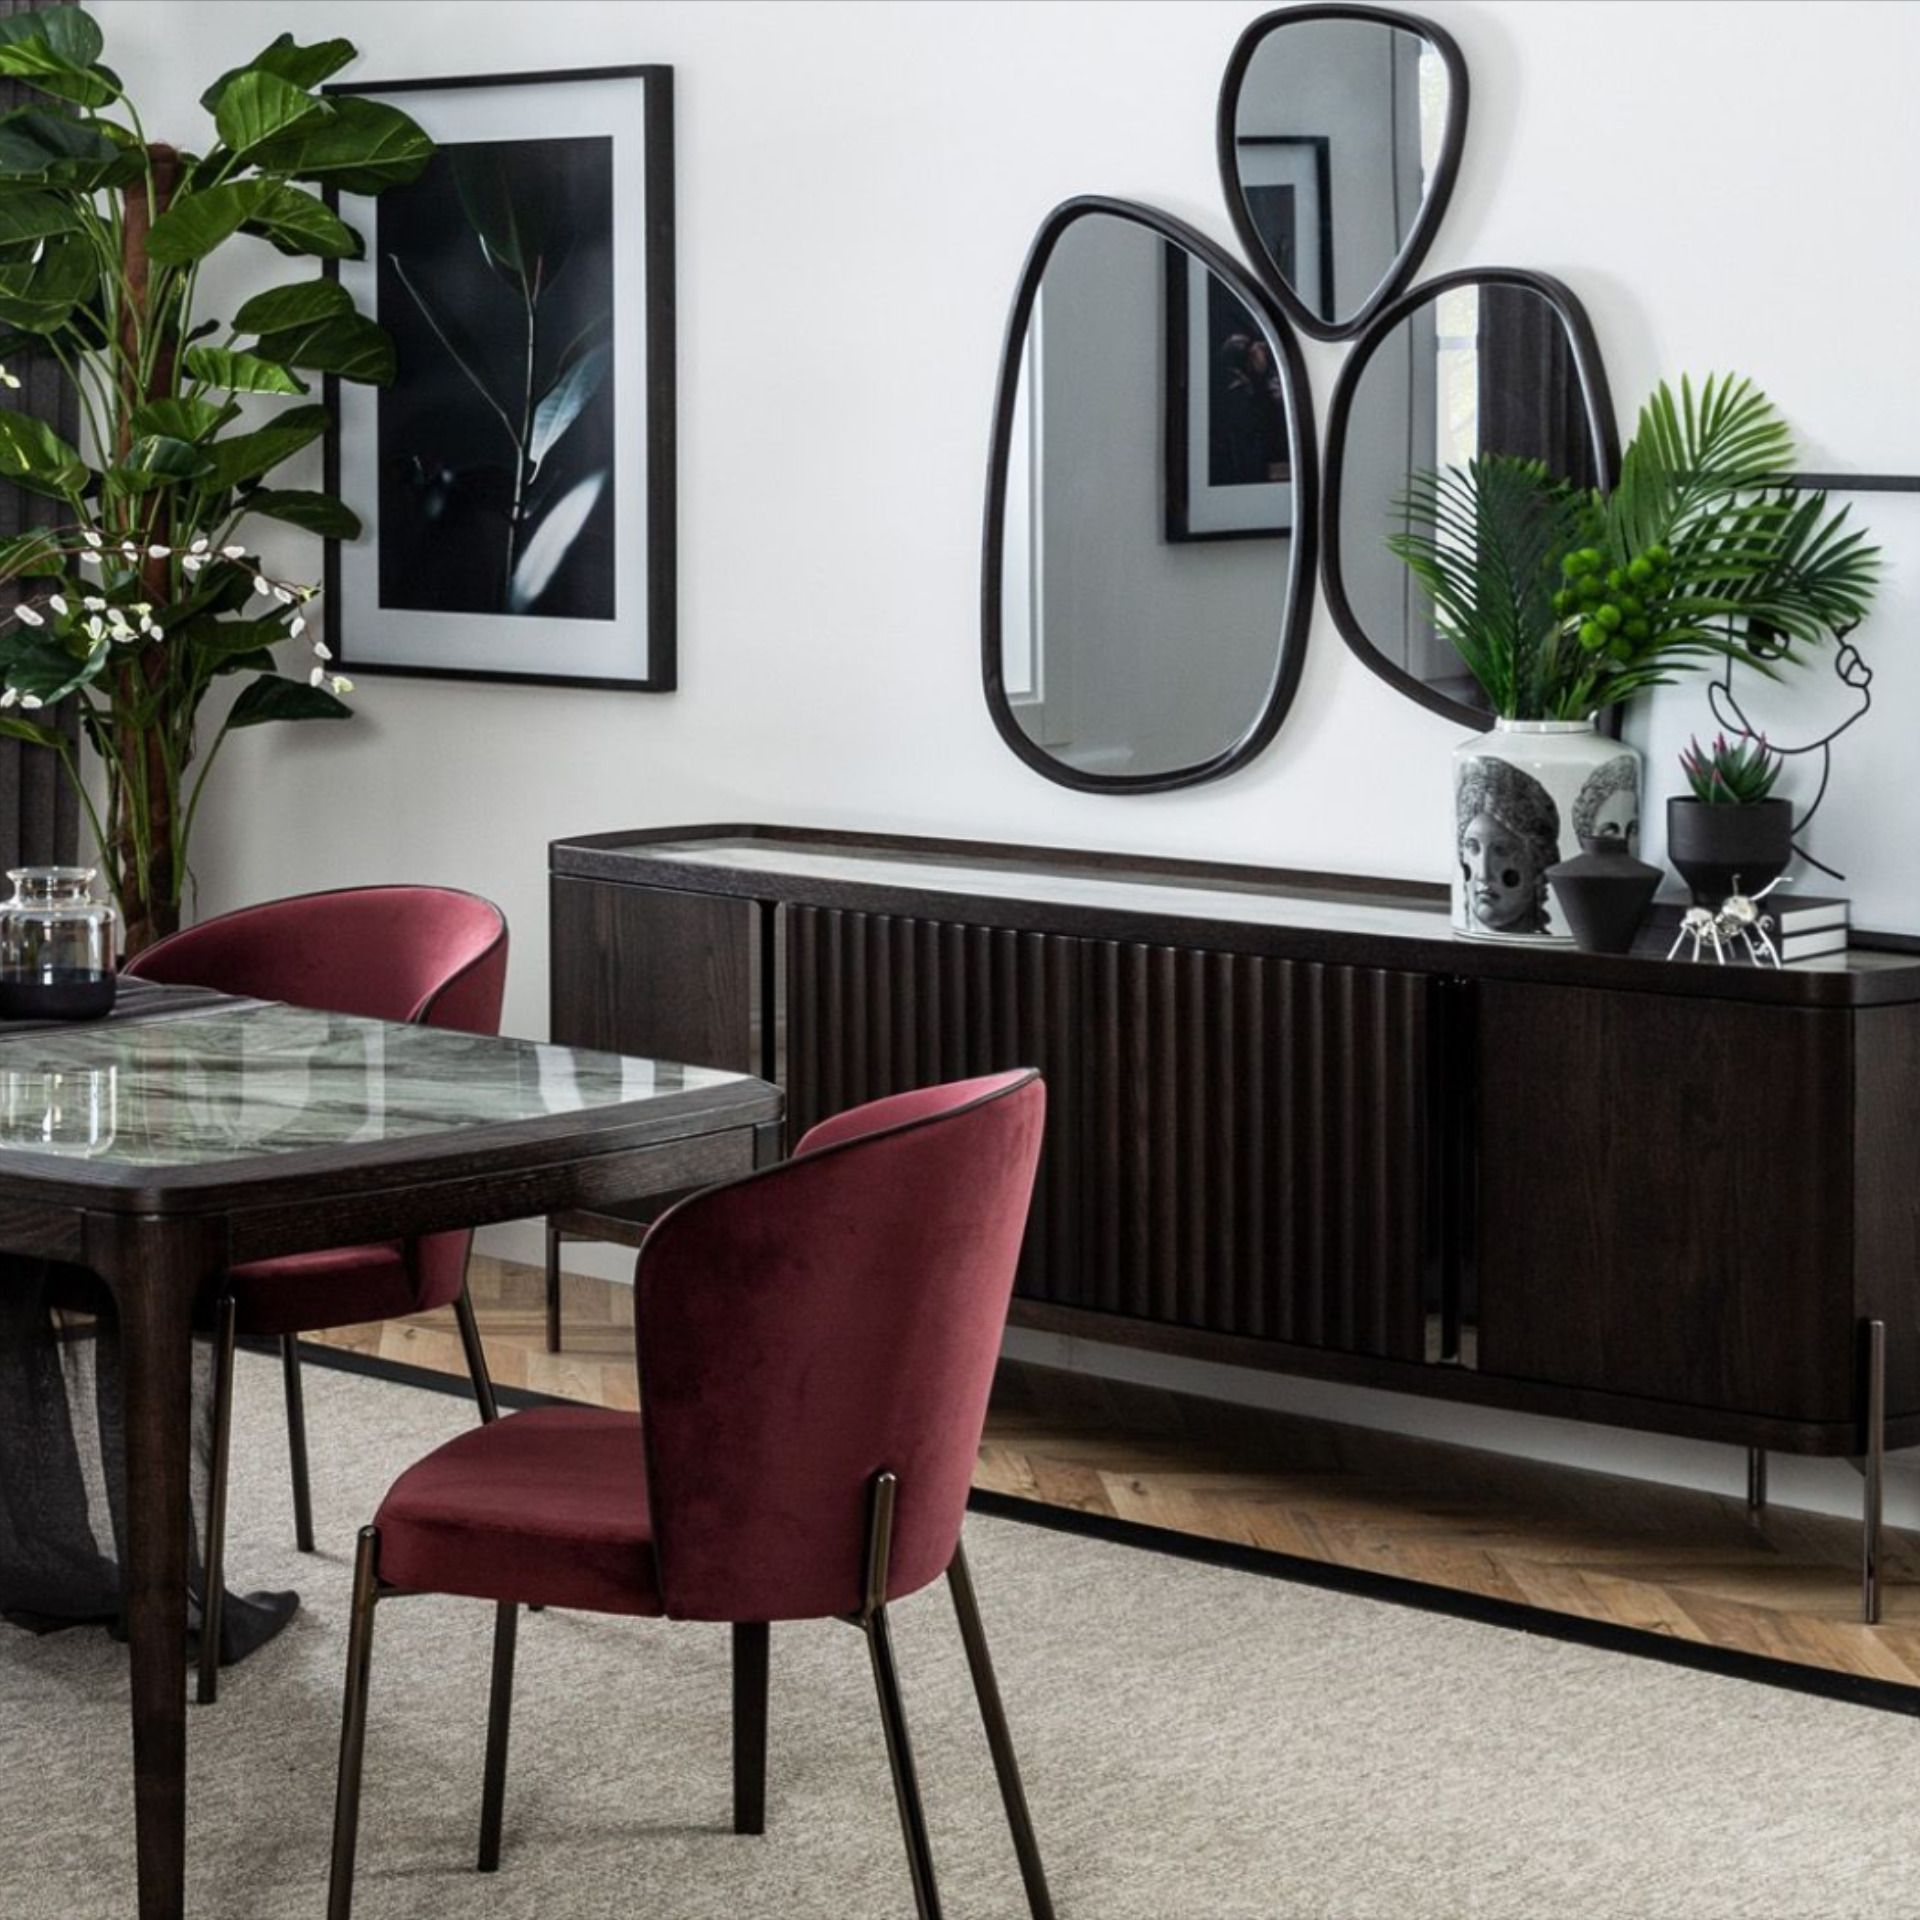 سفره مودرن صغيره Nighty Modern Dining Room Modern Dining Furniture